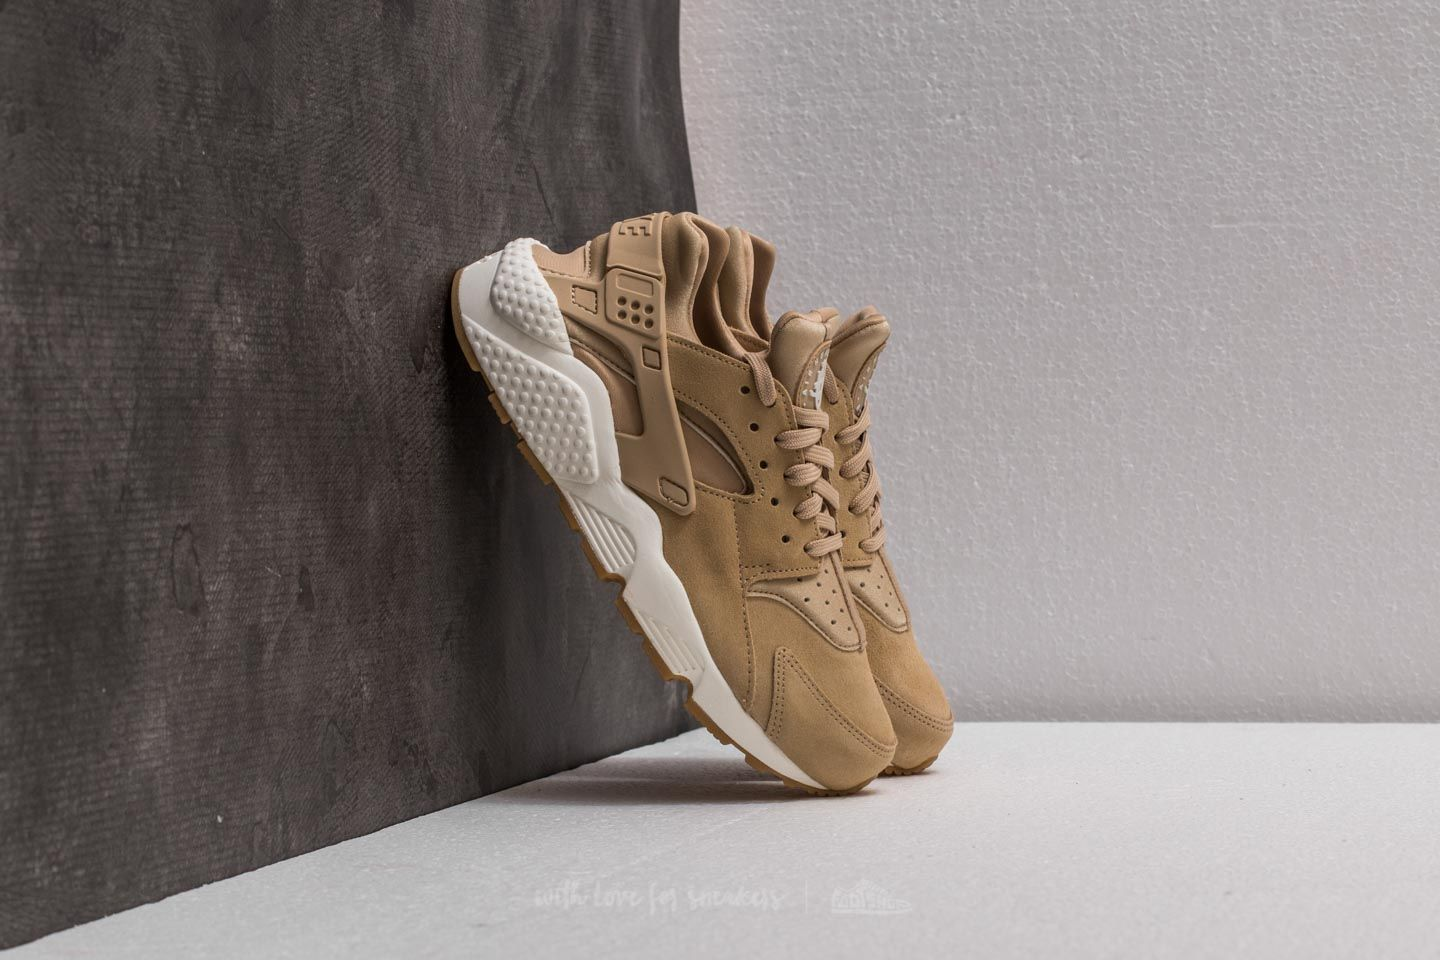 new product 1d465 2f6f5 Nike Wmns Air Huarache Run SD. Mushroom  Light Bone-Sail